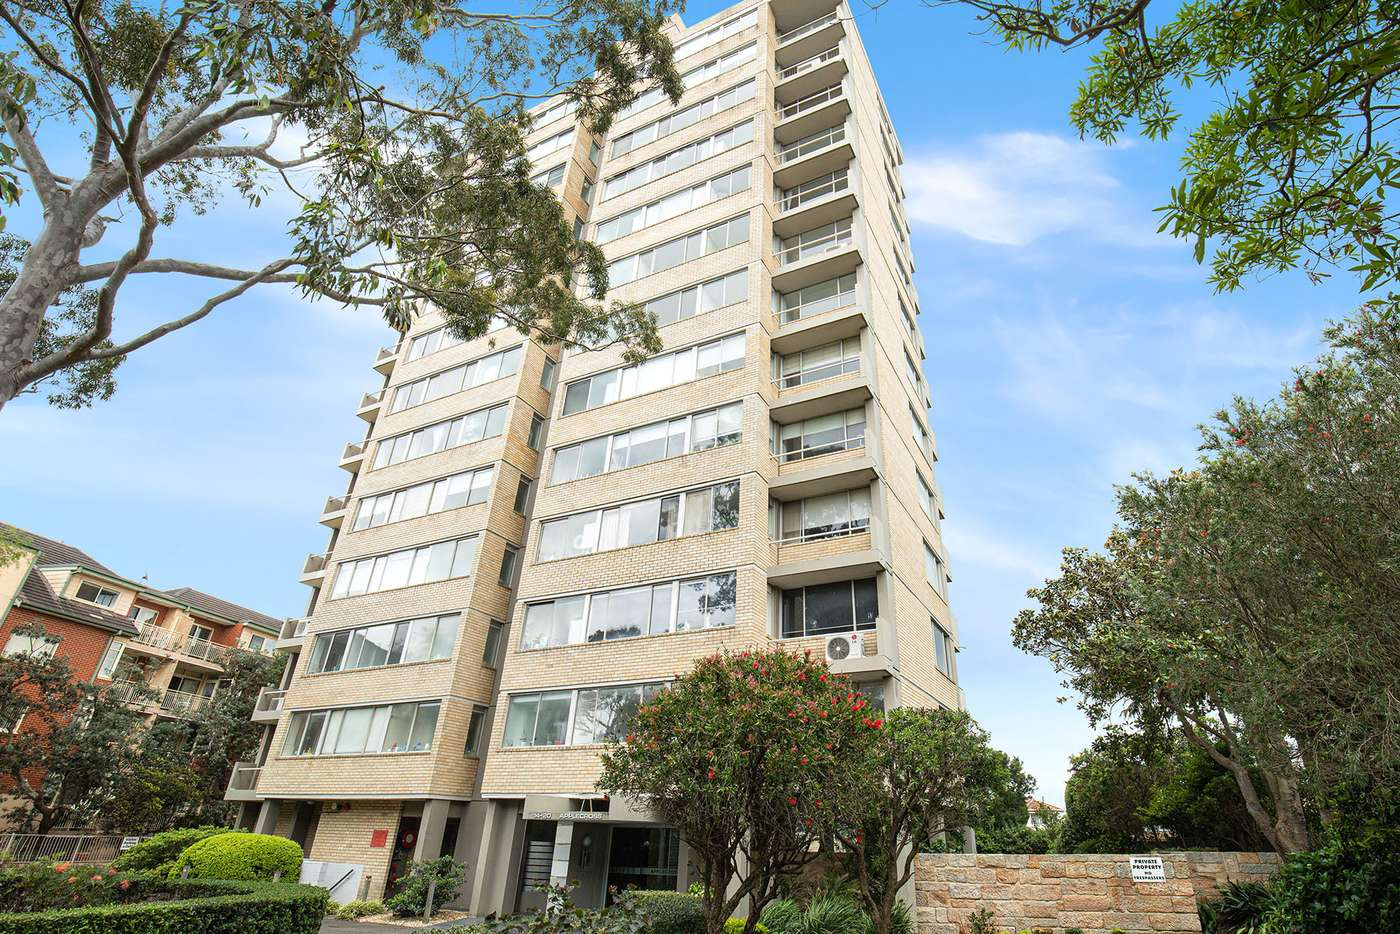 Main view of Homely unit listing, 17/20 Gerard Street, Cremorne NSW 2090